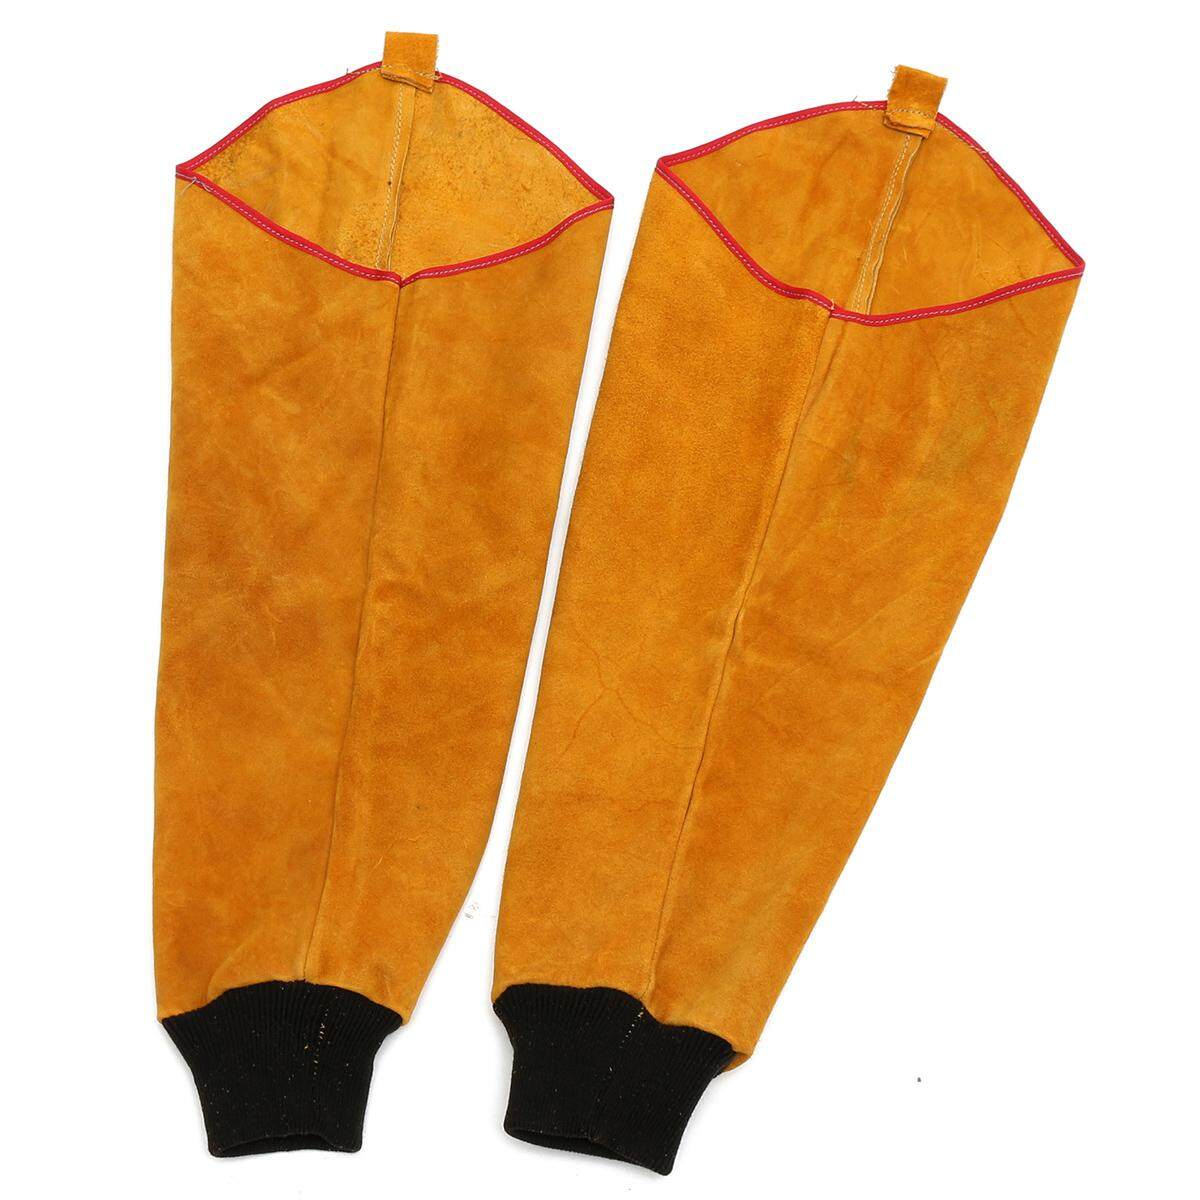 One Pair Cow Leather Welding Sleeves with Elastic Cuff,Welders Leather Sleeve